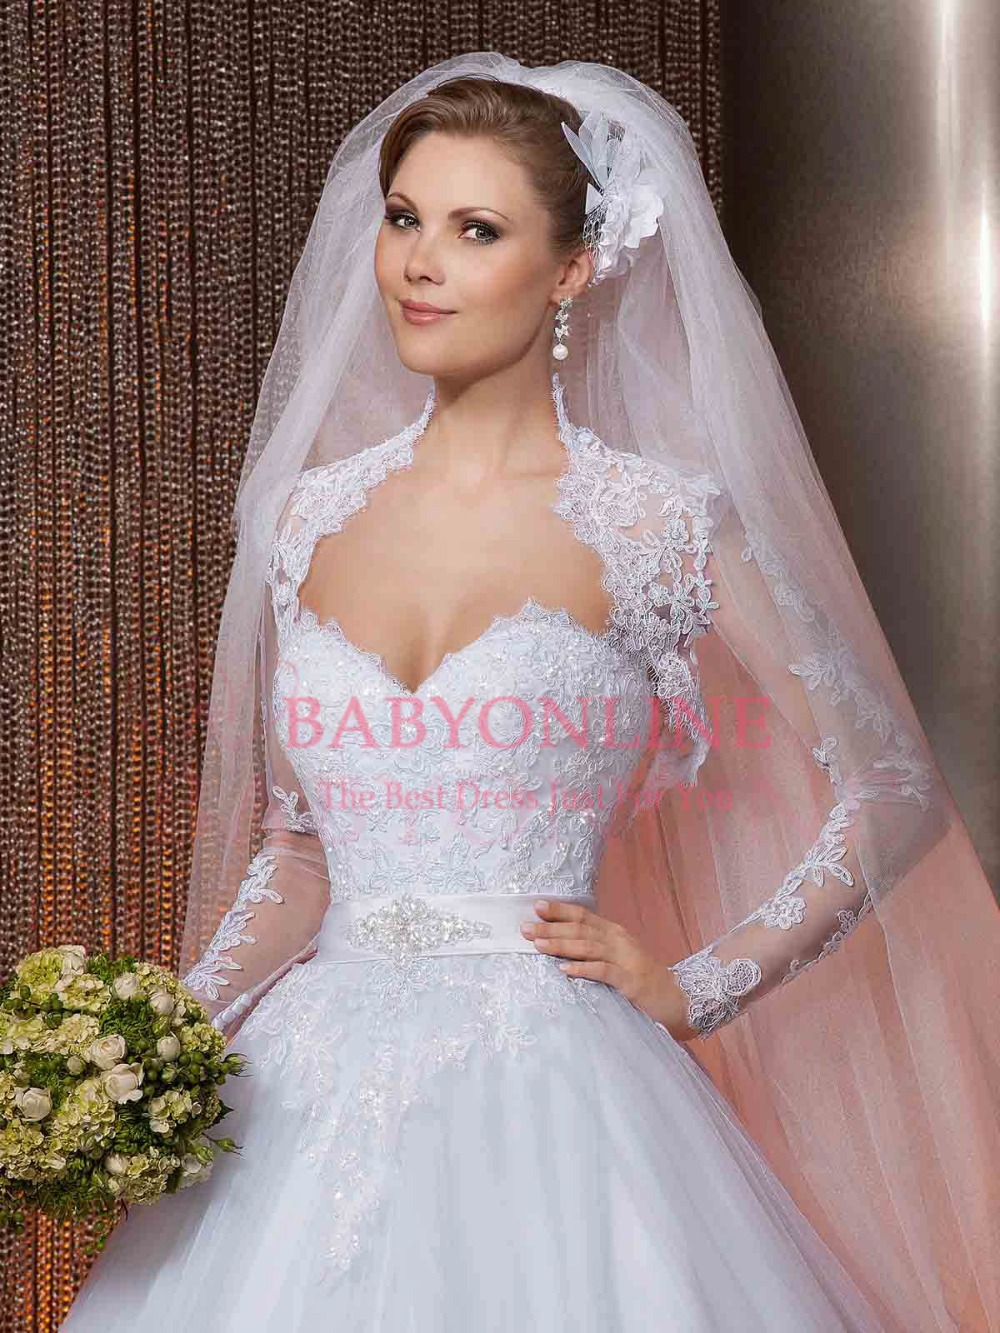 2014 New Style Sweetheart Ball Gown Wedding Dress White Lace Princess ...